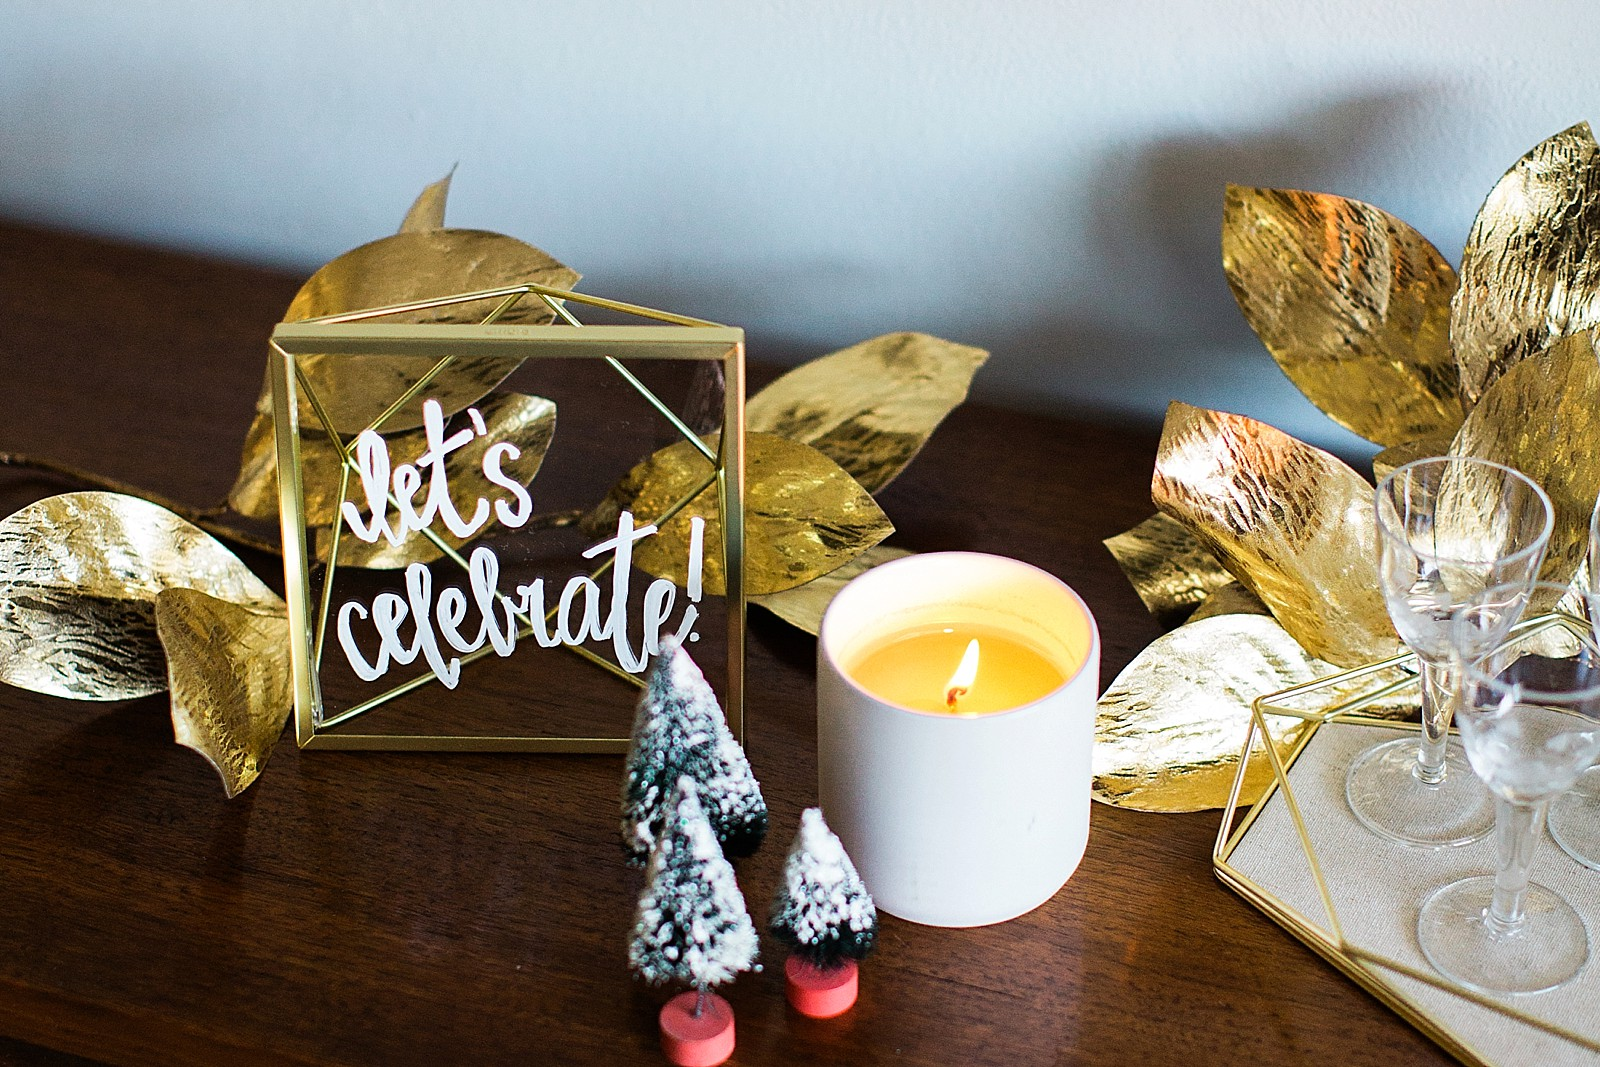 umbra-diana-elizabeth-modern-glam-christmas-decor-gift-giving-frame-ideas-2977